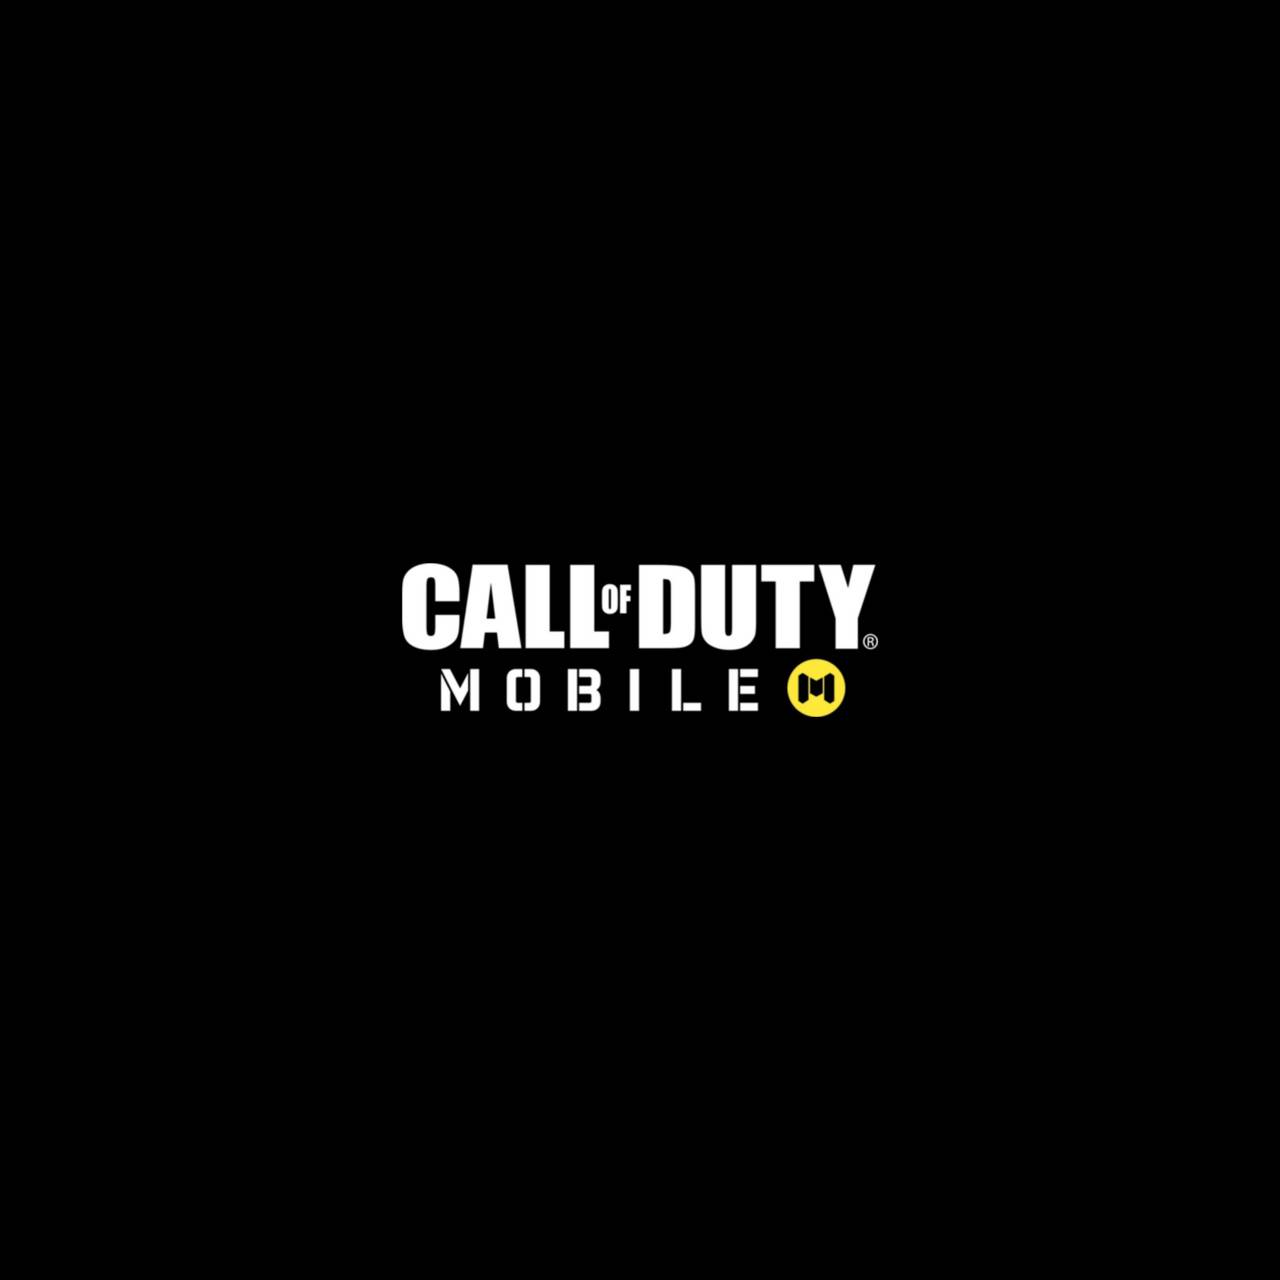 Cod Mobile Wallpaper By Alexiscod 75 Free On Zedge